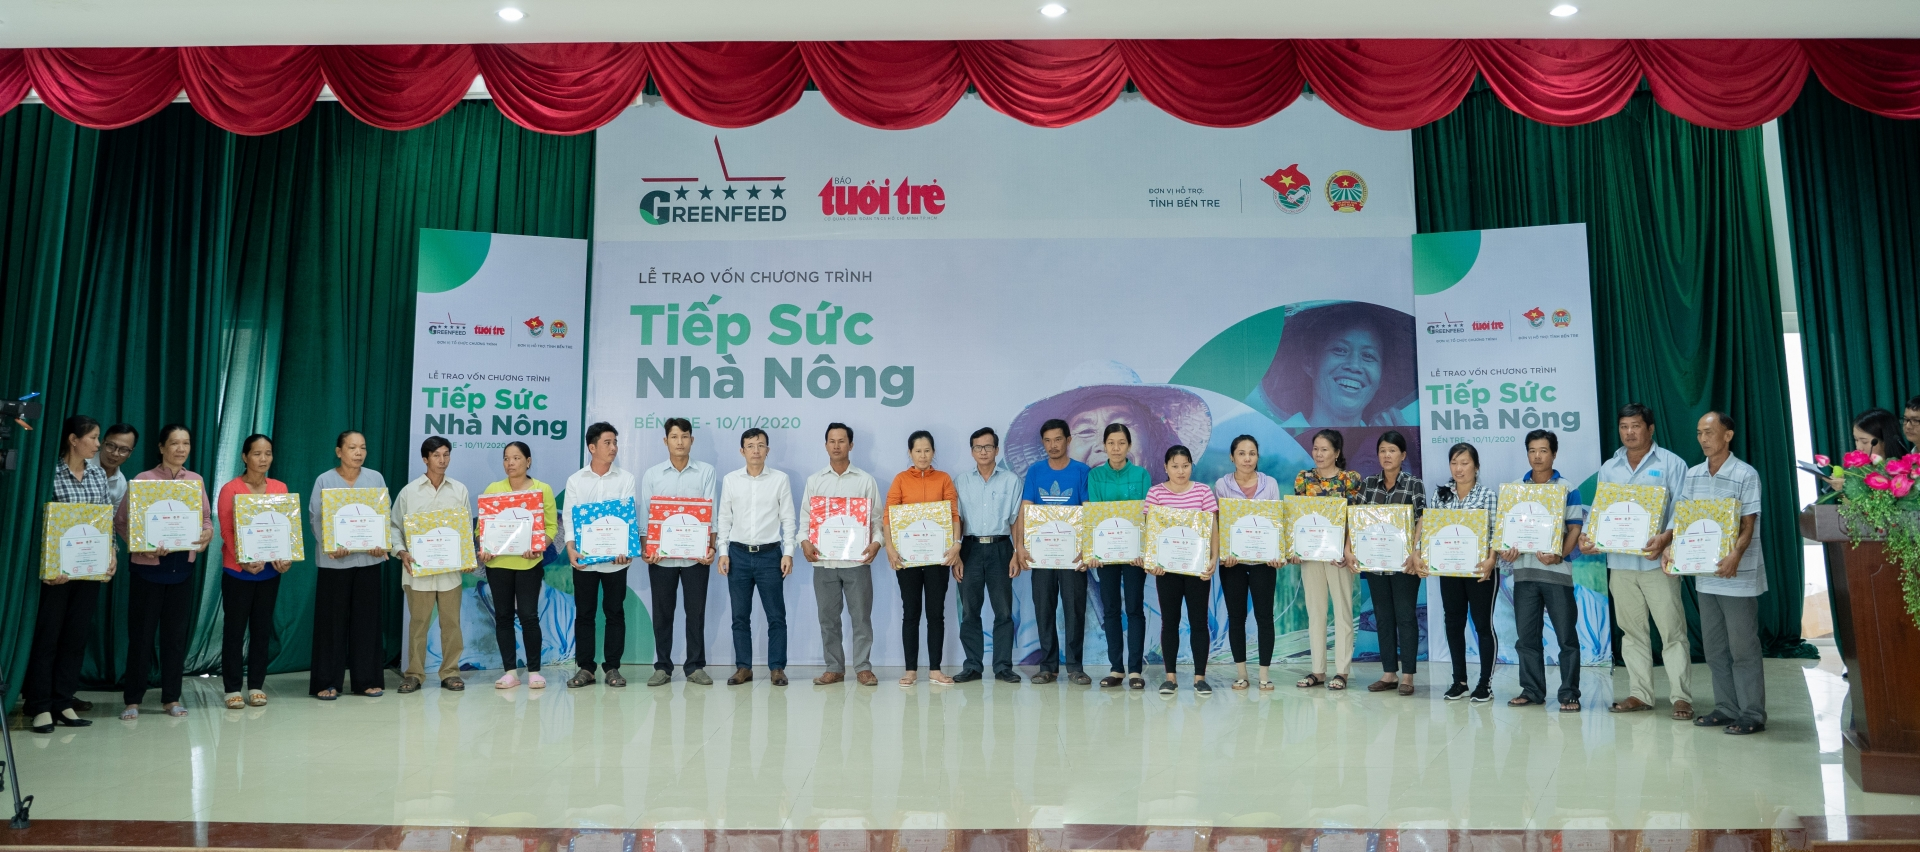 Tiep Suc Nha Nong 2020 continues supporting livelihood of farmers